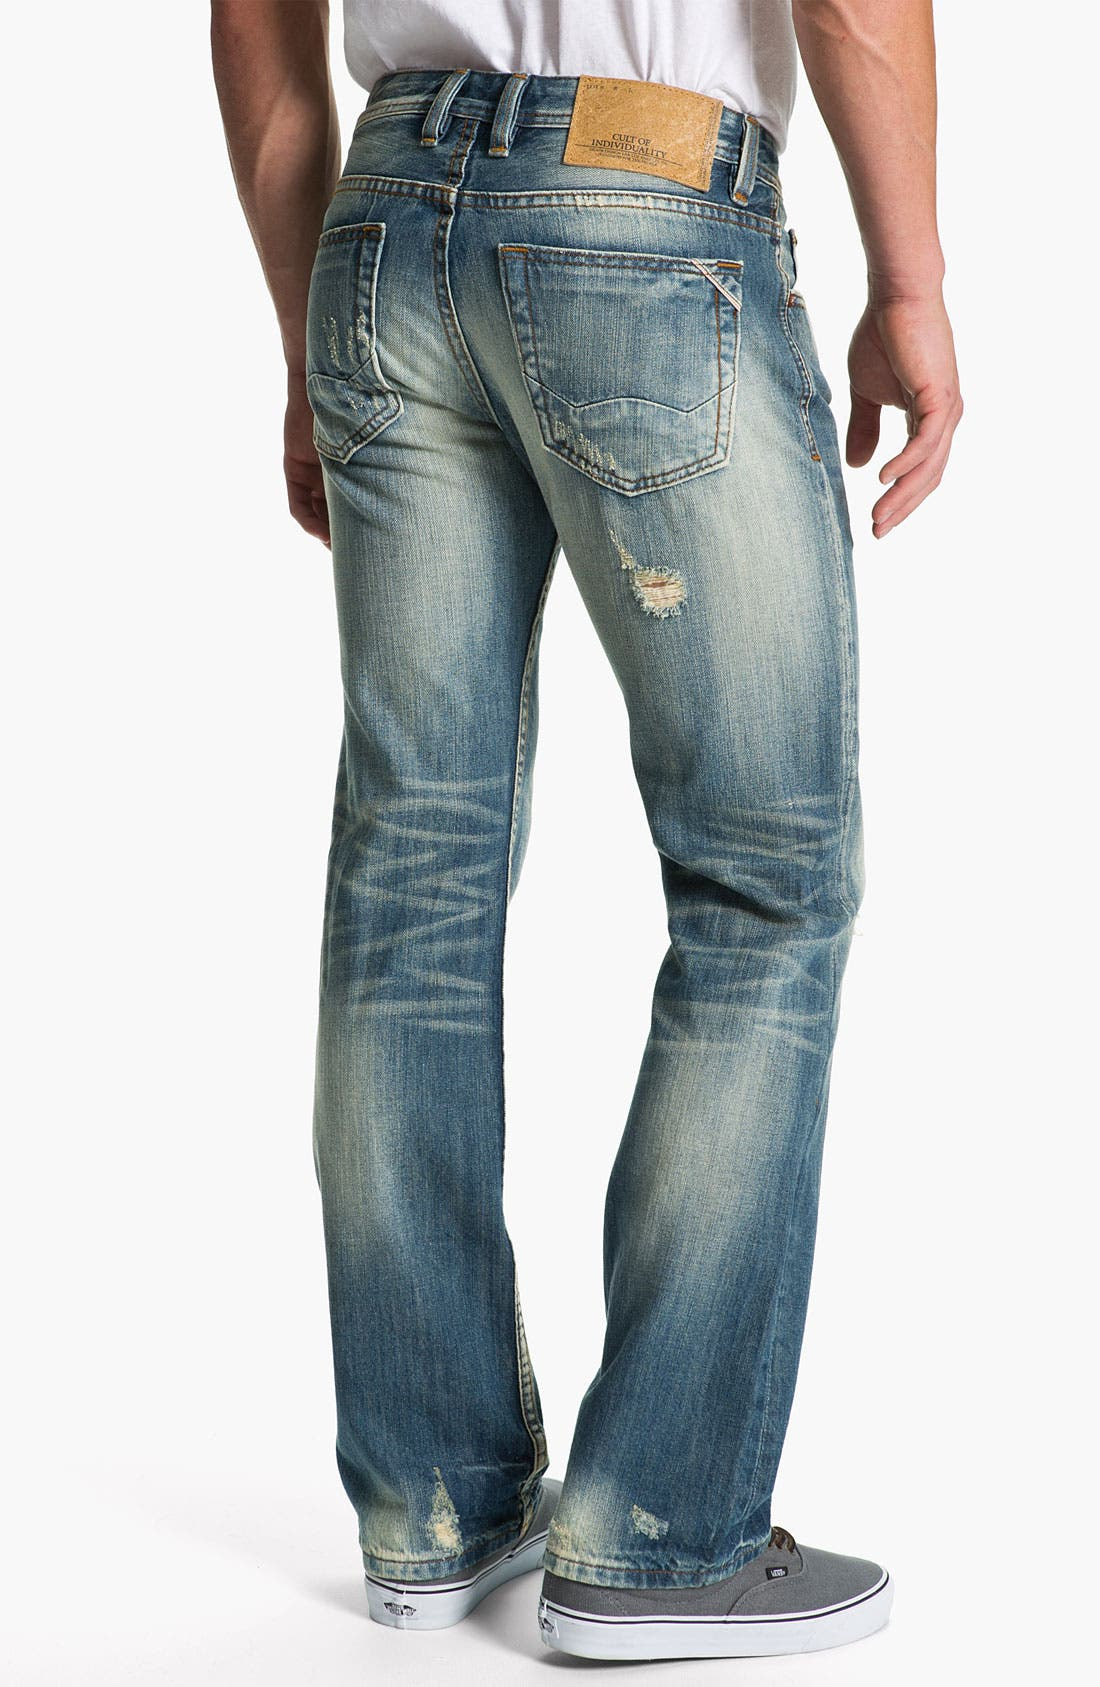 Alternate Image 1 Selected - Cult of Individuality 'Hagen' Relaxed Straight Leg Jeans (Light Blue)